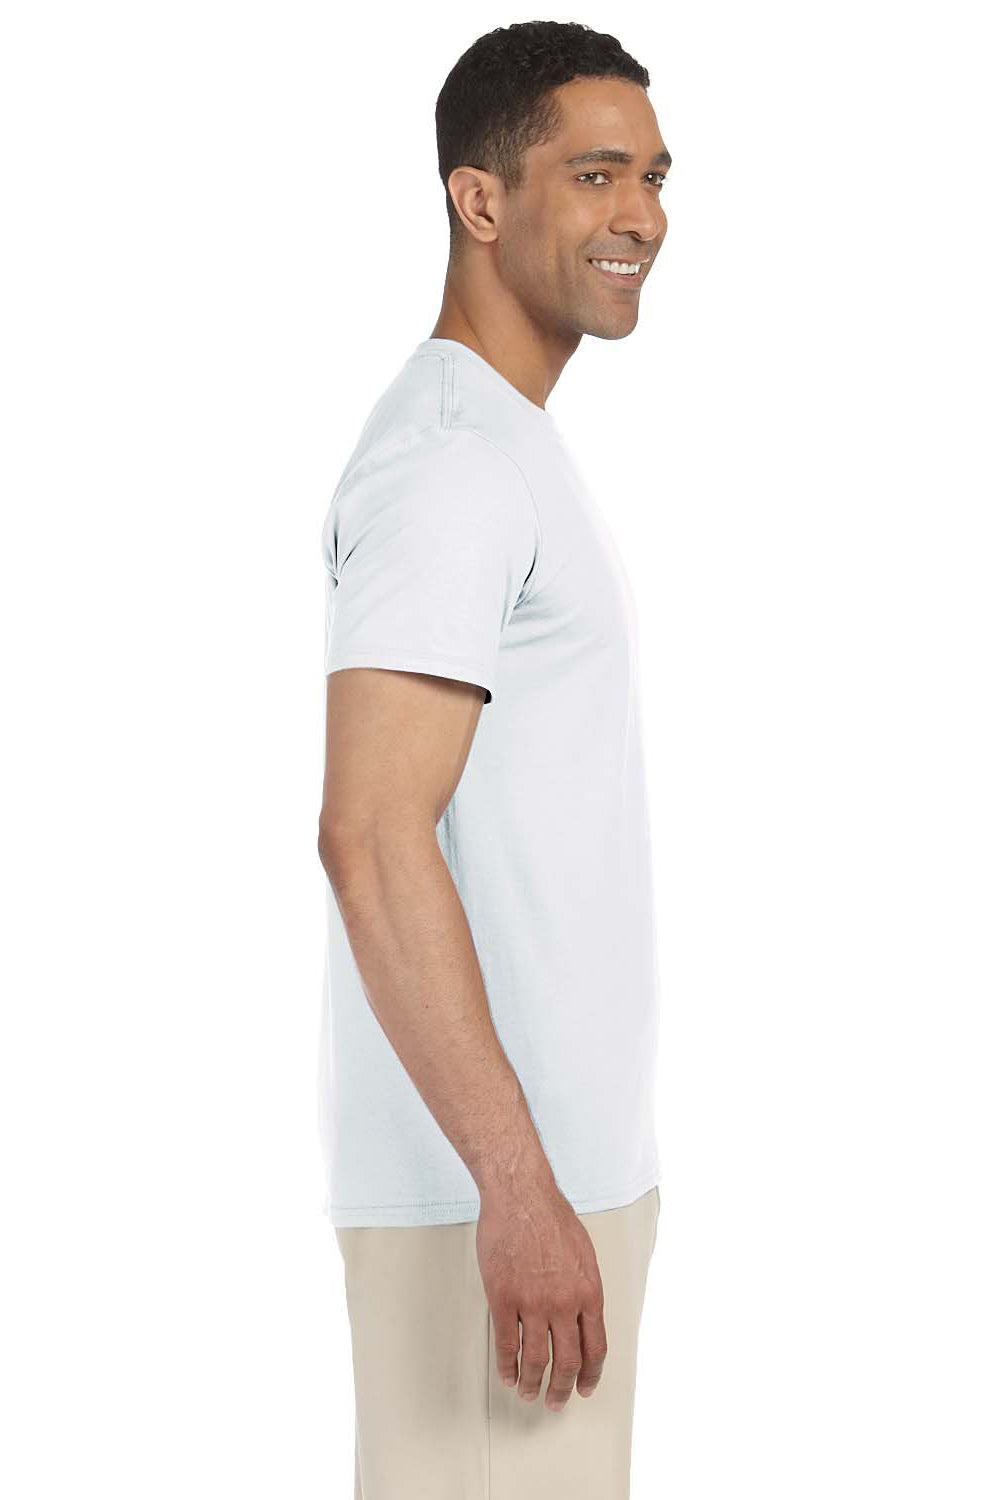 Gildan G640 Mens Softstyle Short Sleeve Crewneck T-Shirt White Side